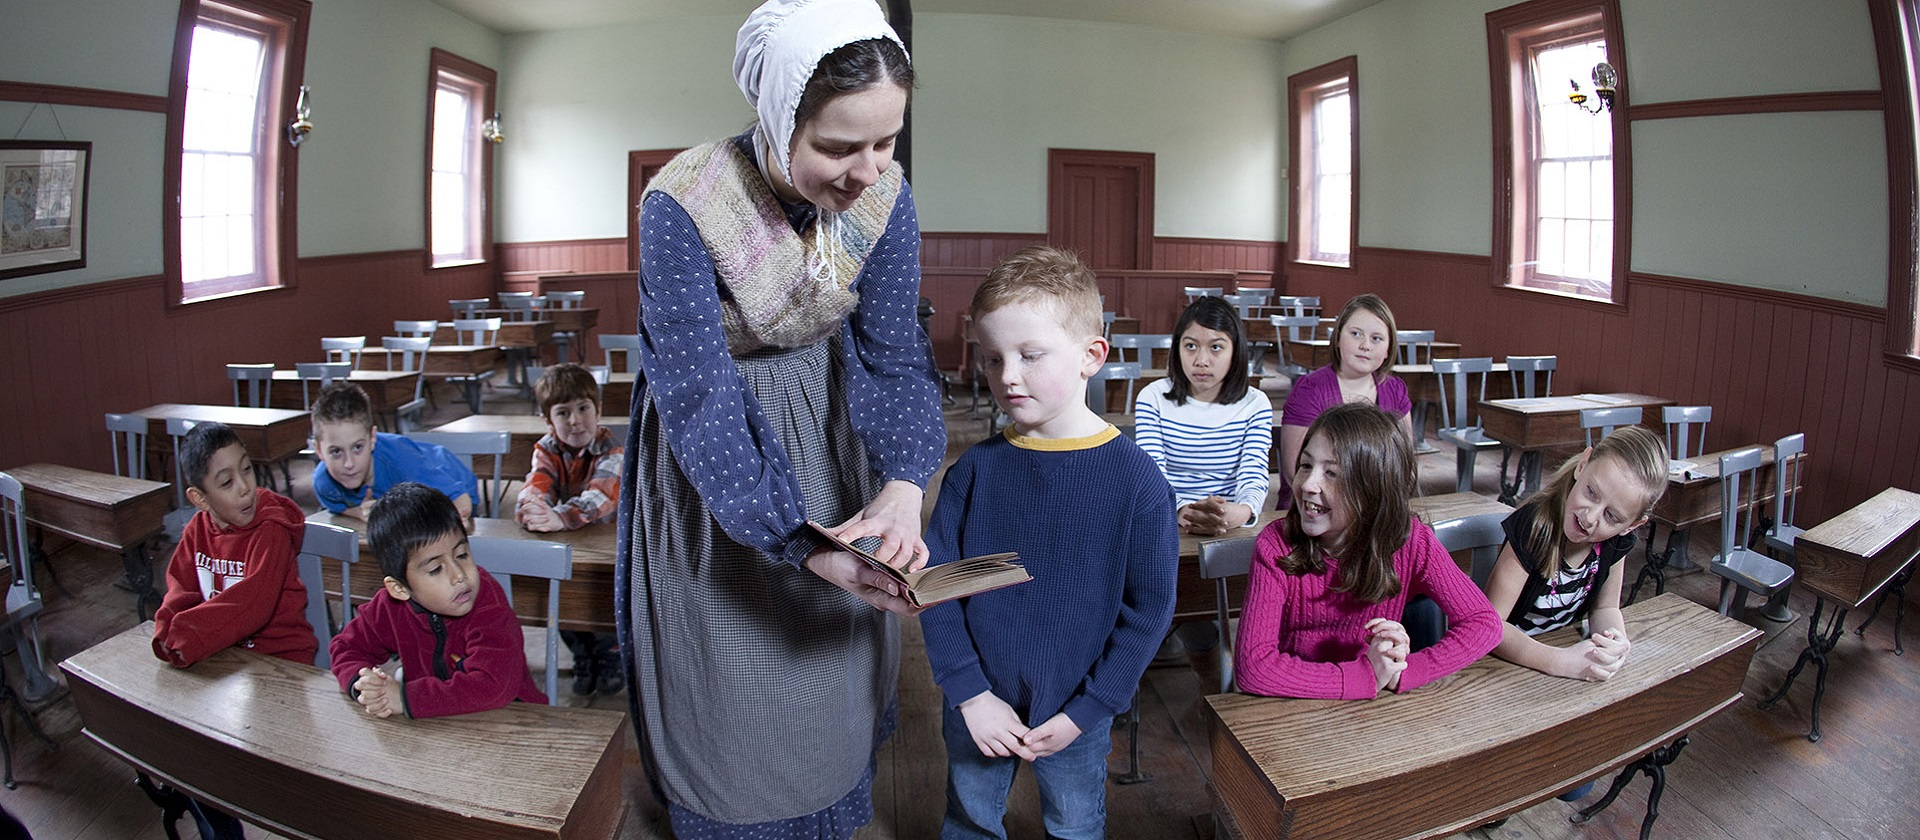 students and teacher in 1860s one room schoolhouse